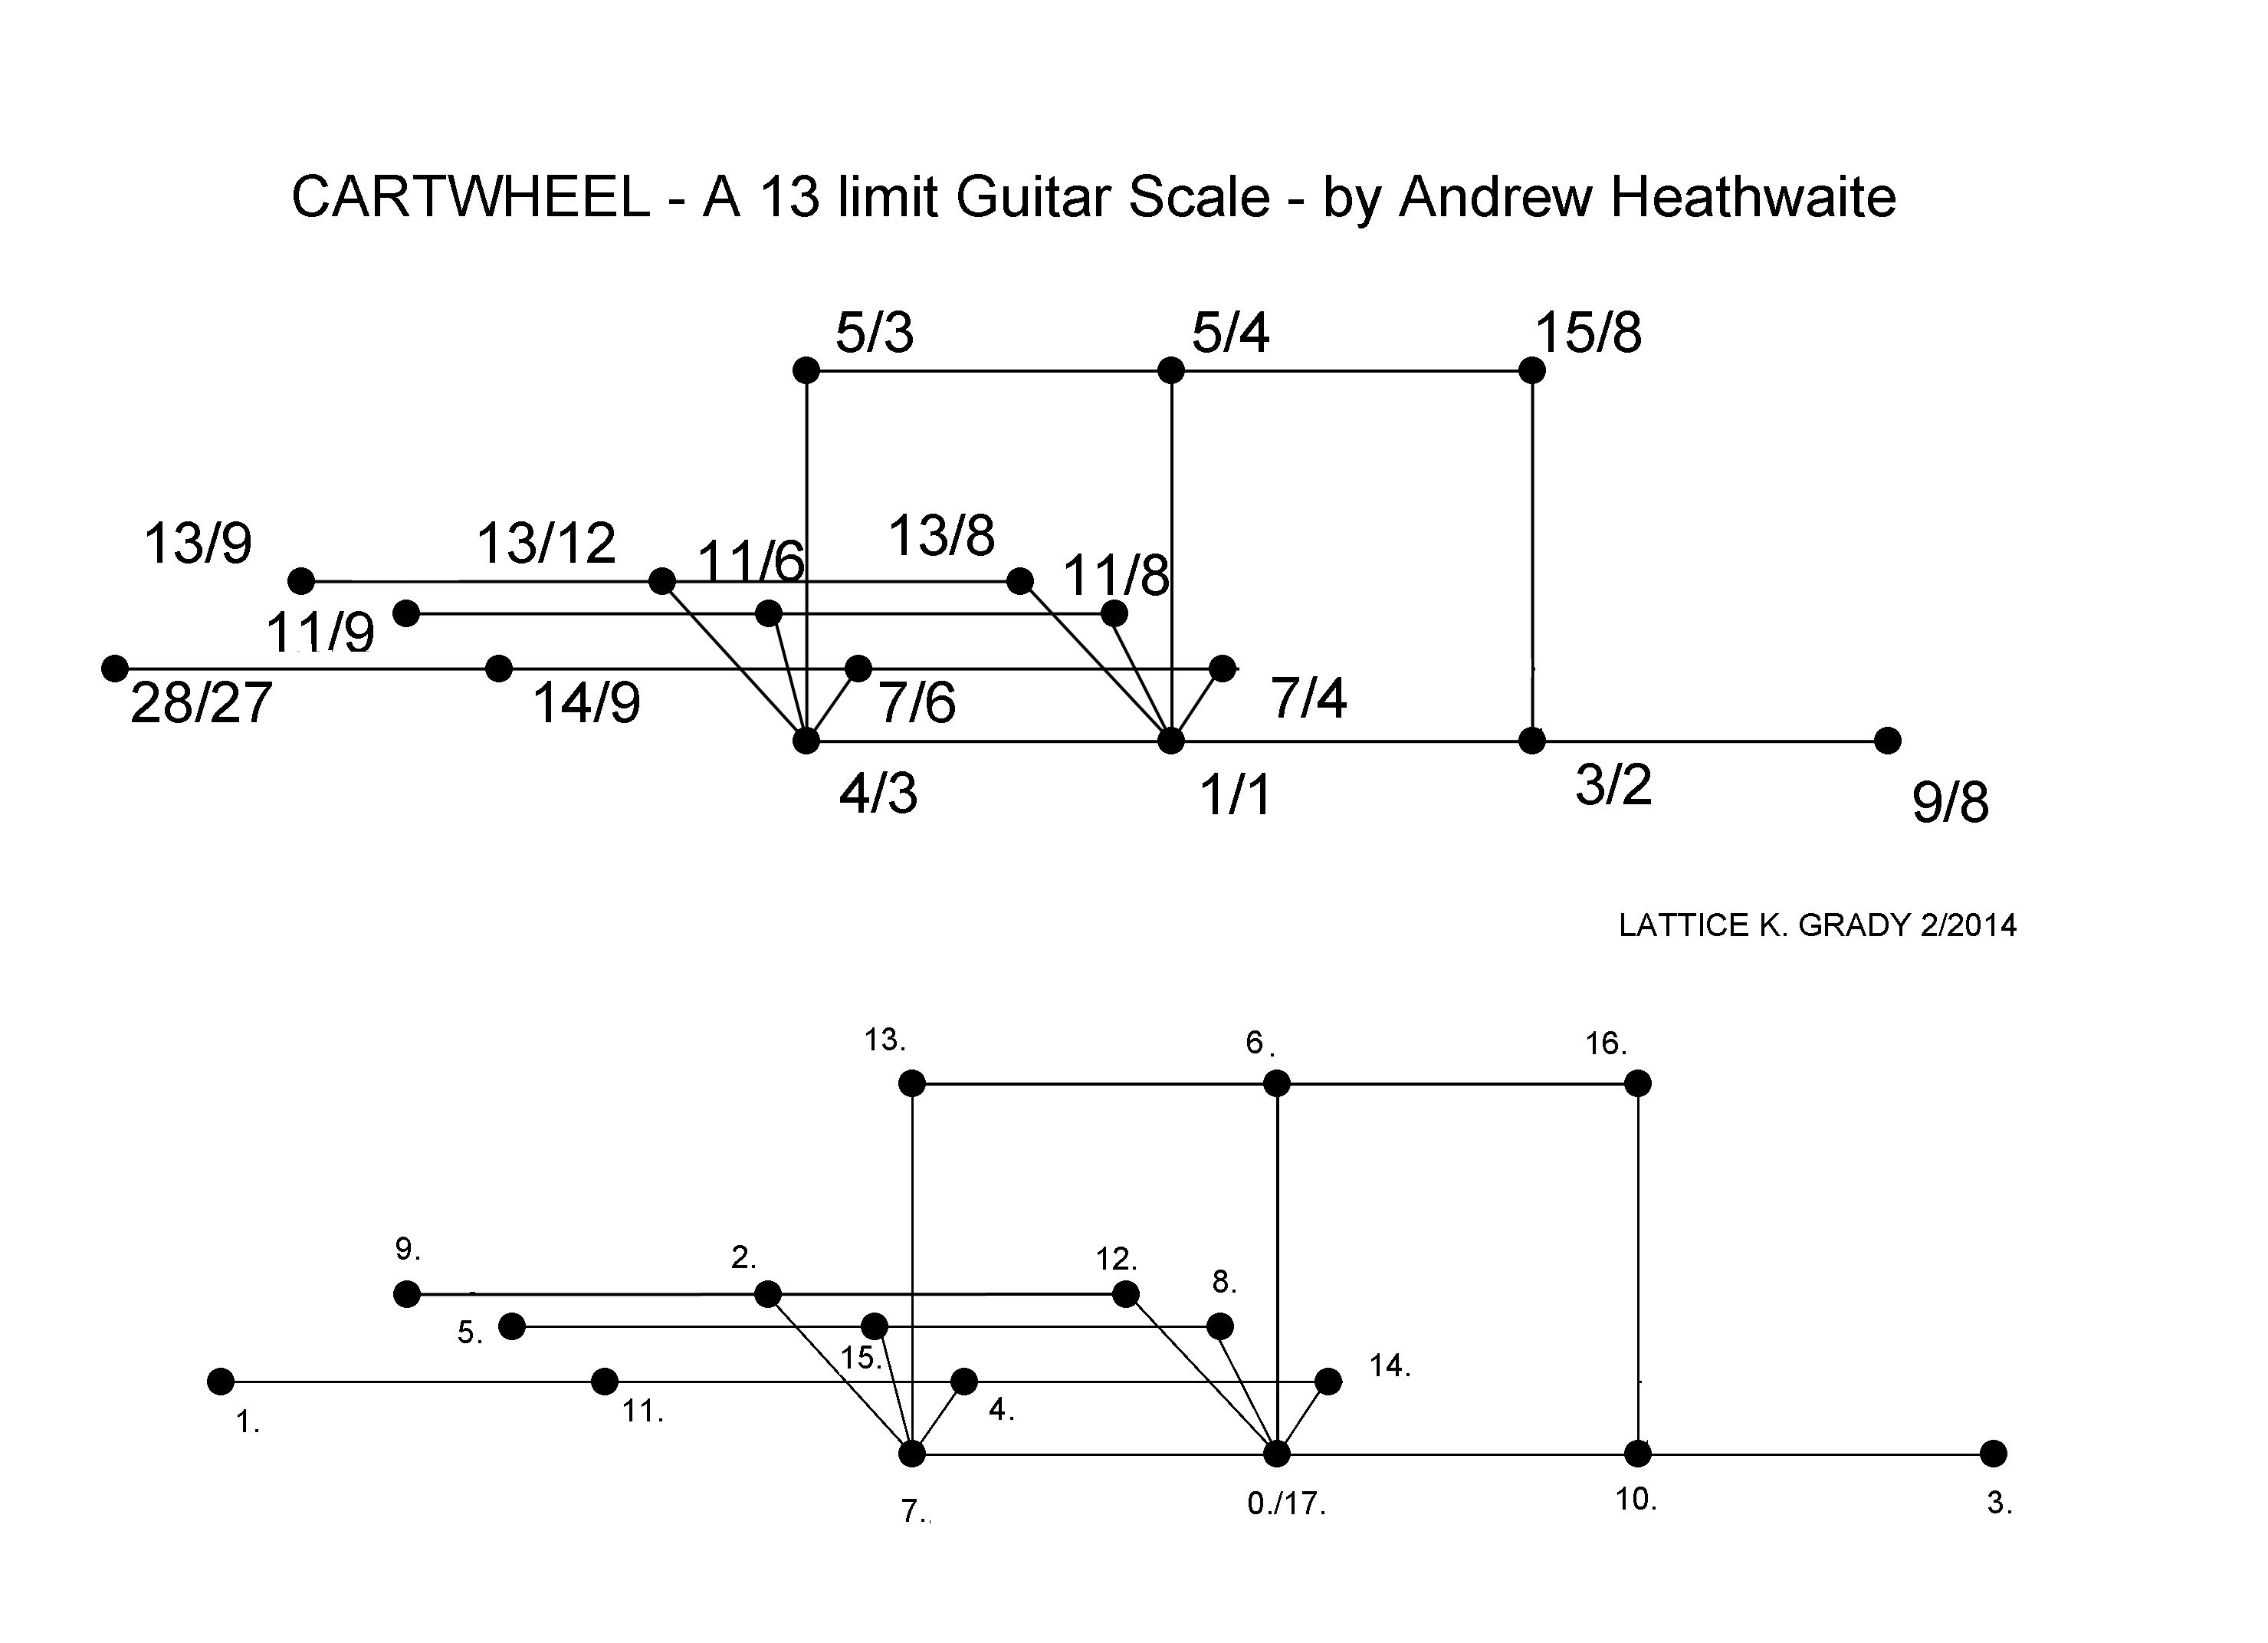 cartwheel scale